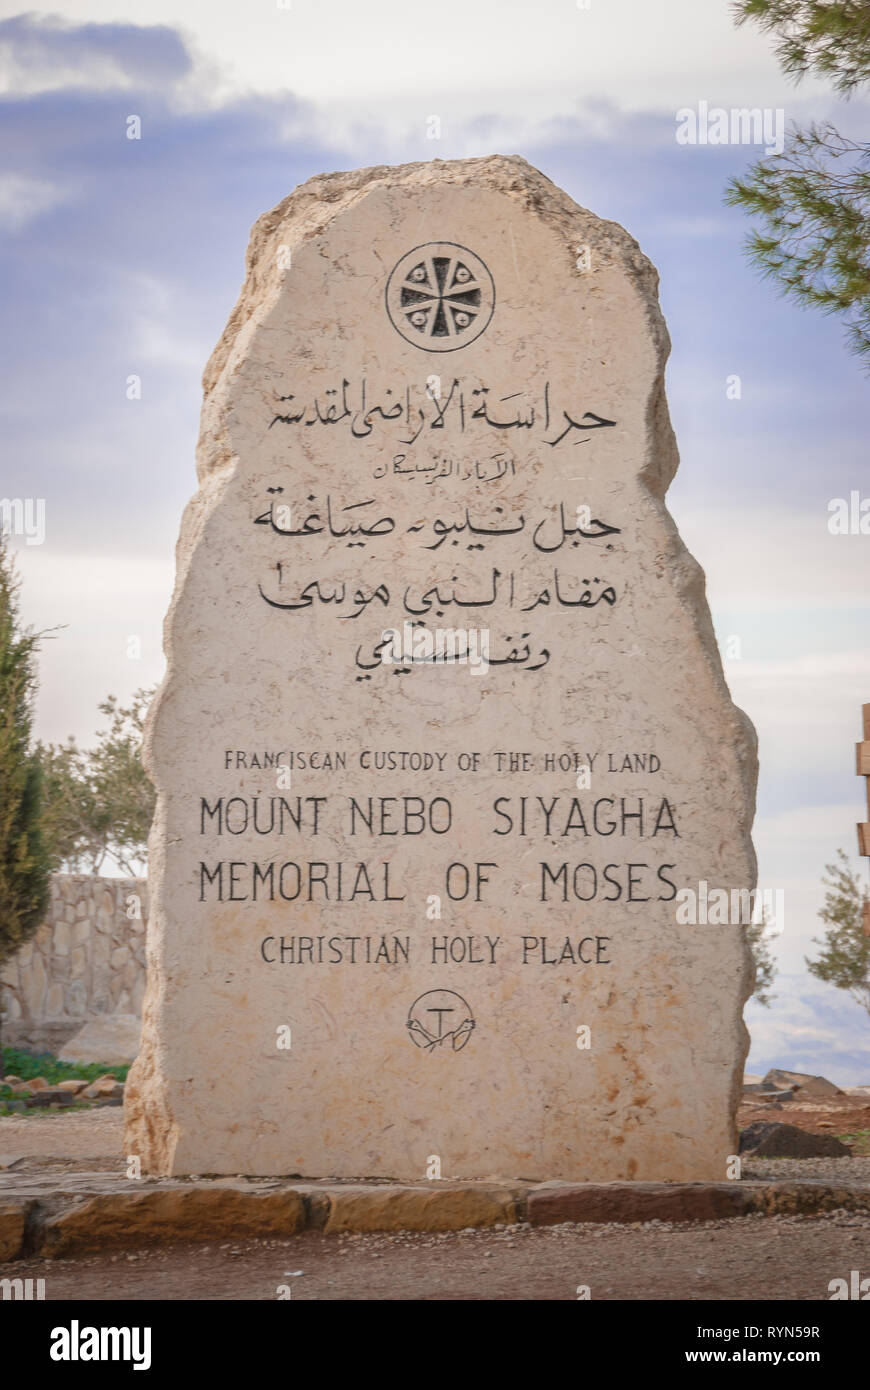 Stone at the entrance of the Nebo Mount with inscription Franciscan custody of the Holy Land, Mount Nebo Siyagha Memorial of Moses, Christian holy pla - Stock Image